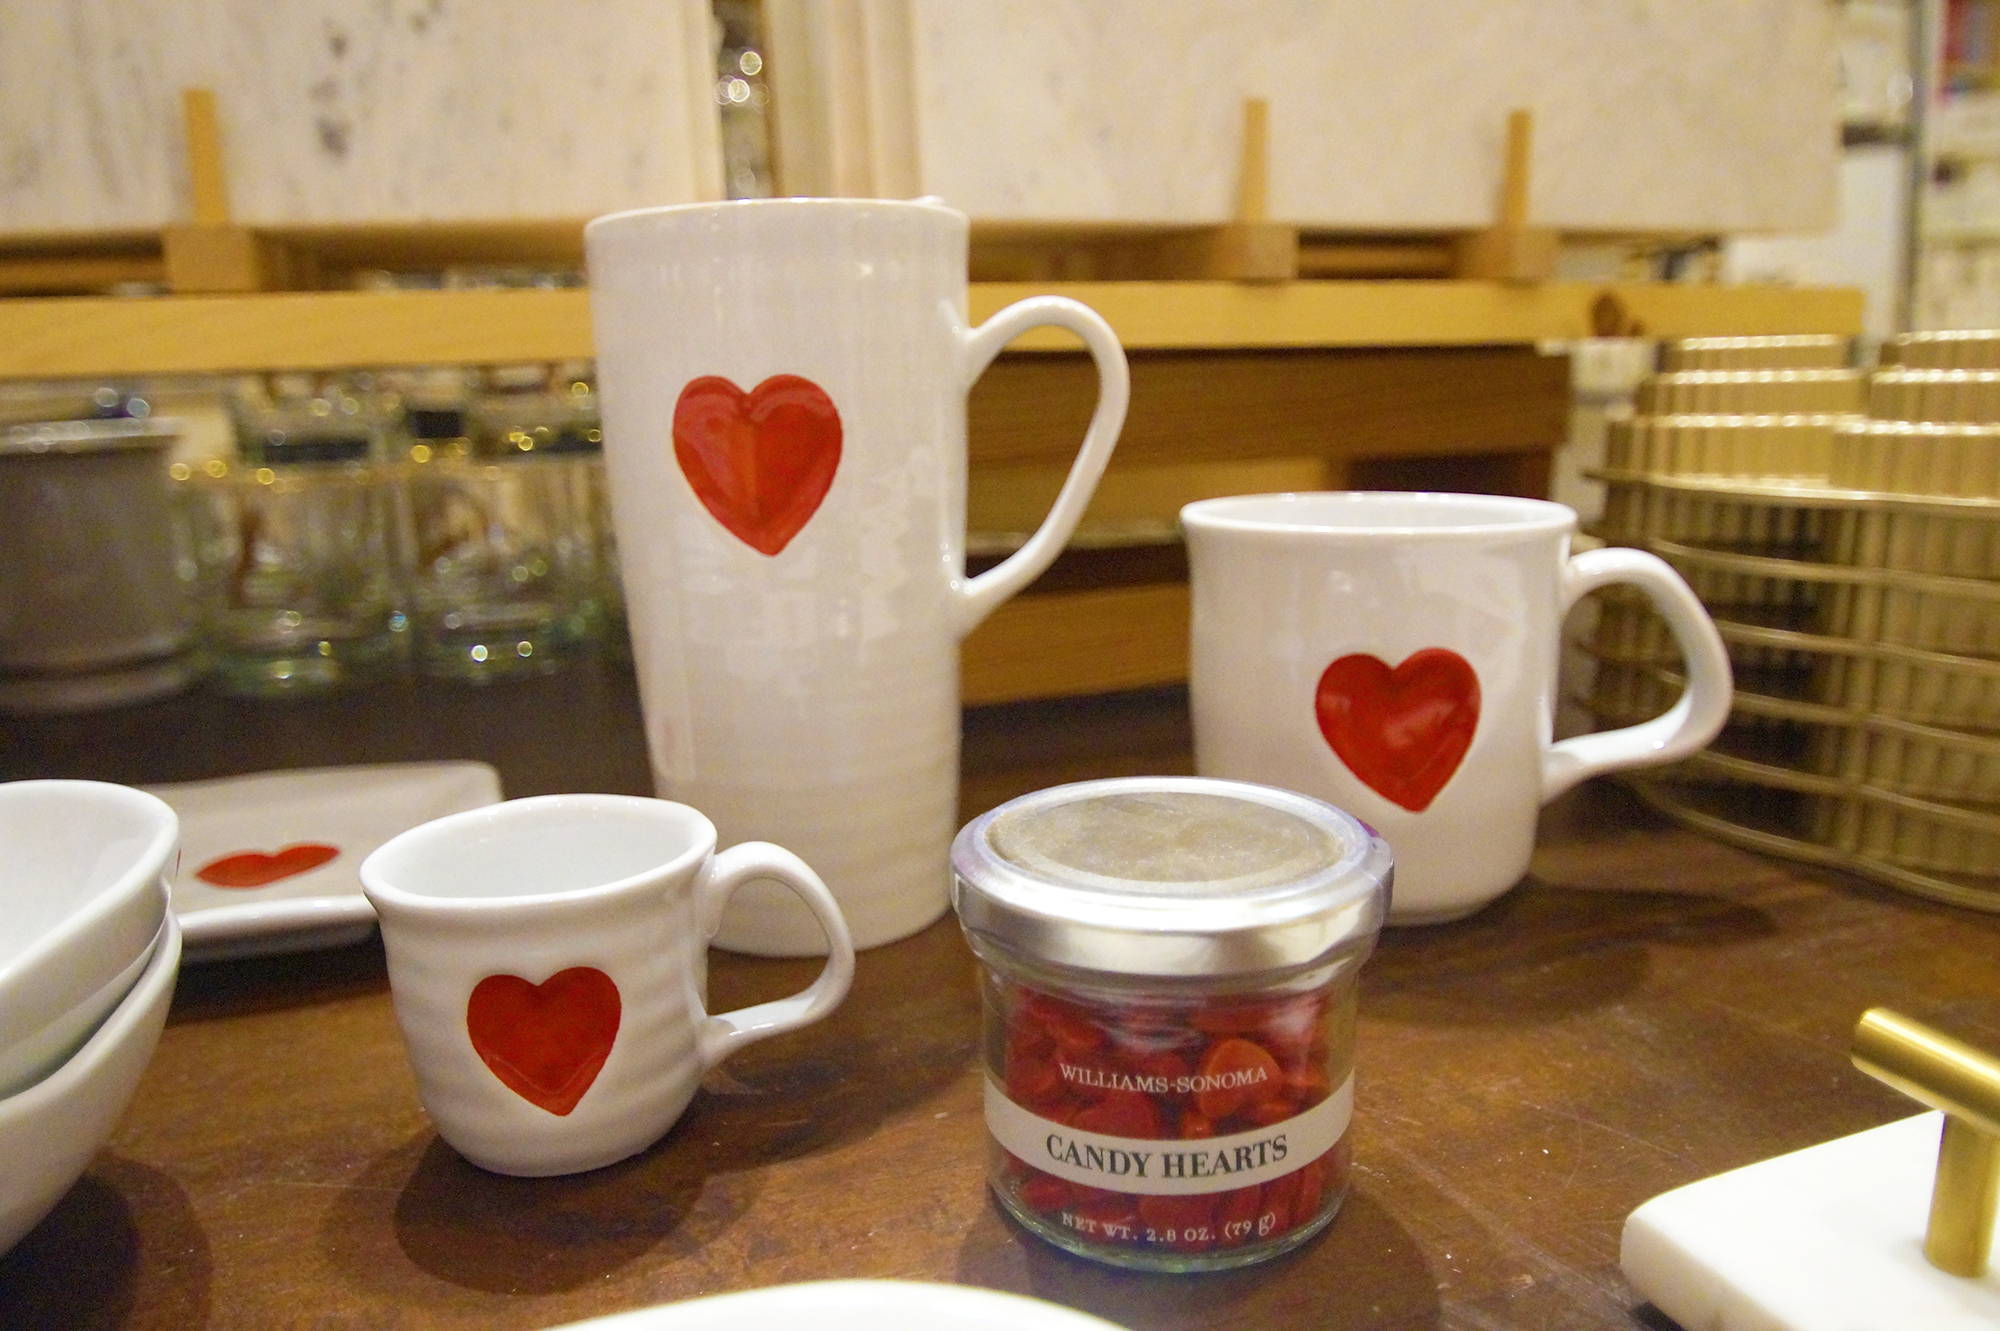 williams sonoma heart kitchenware